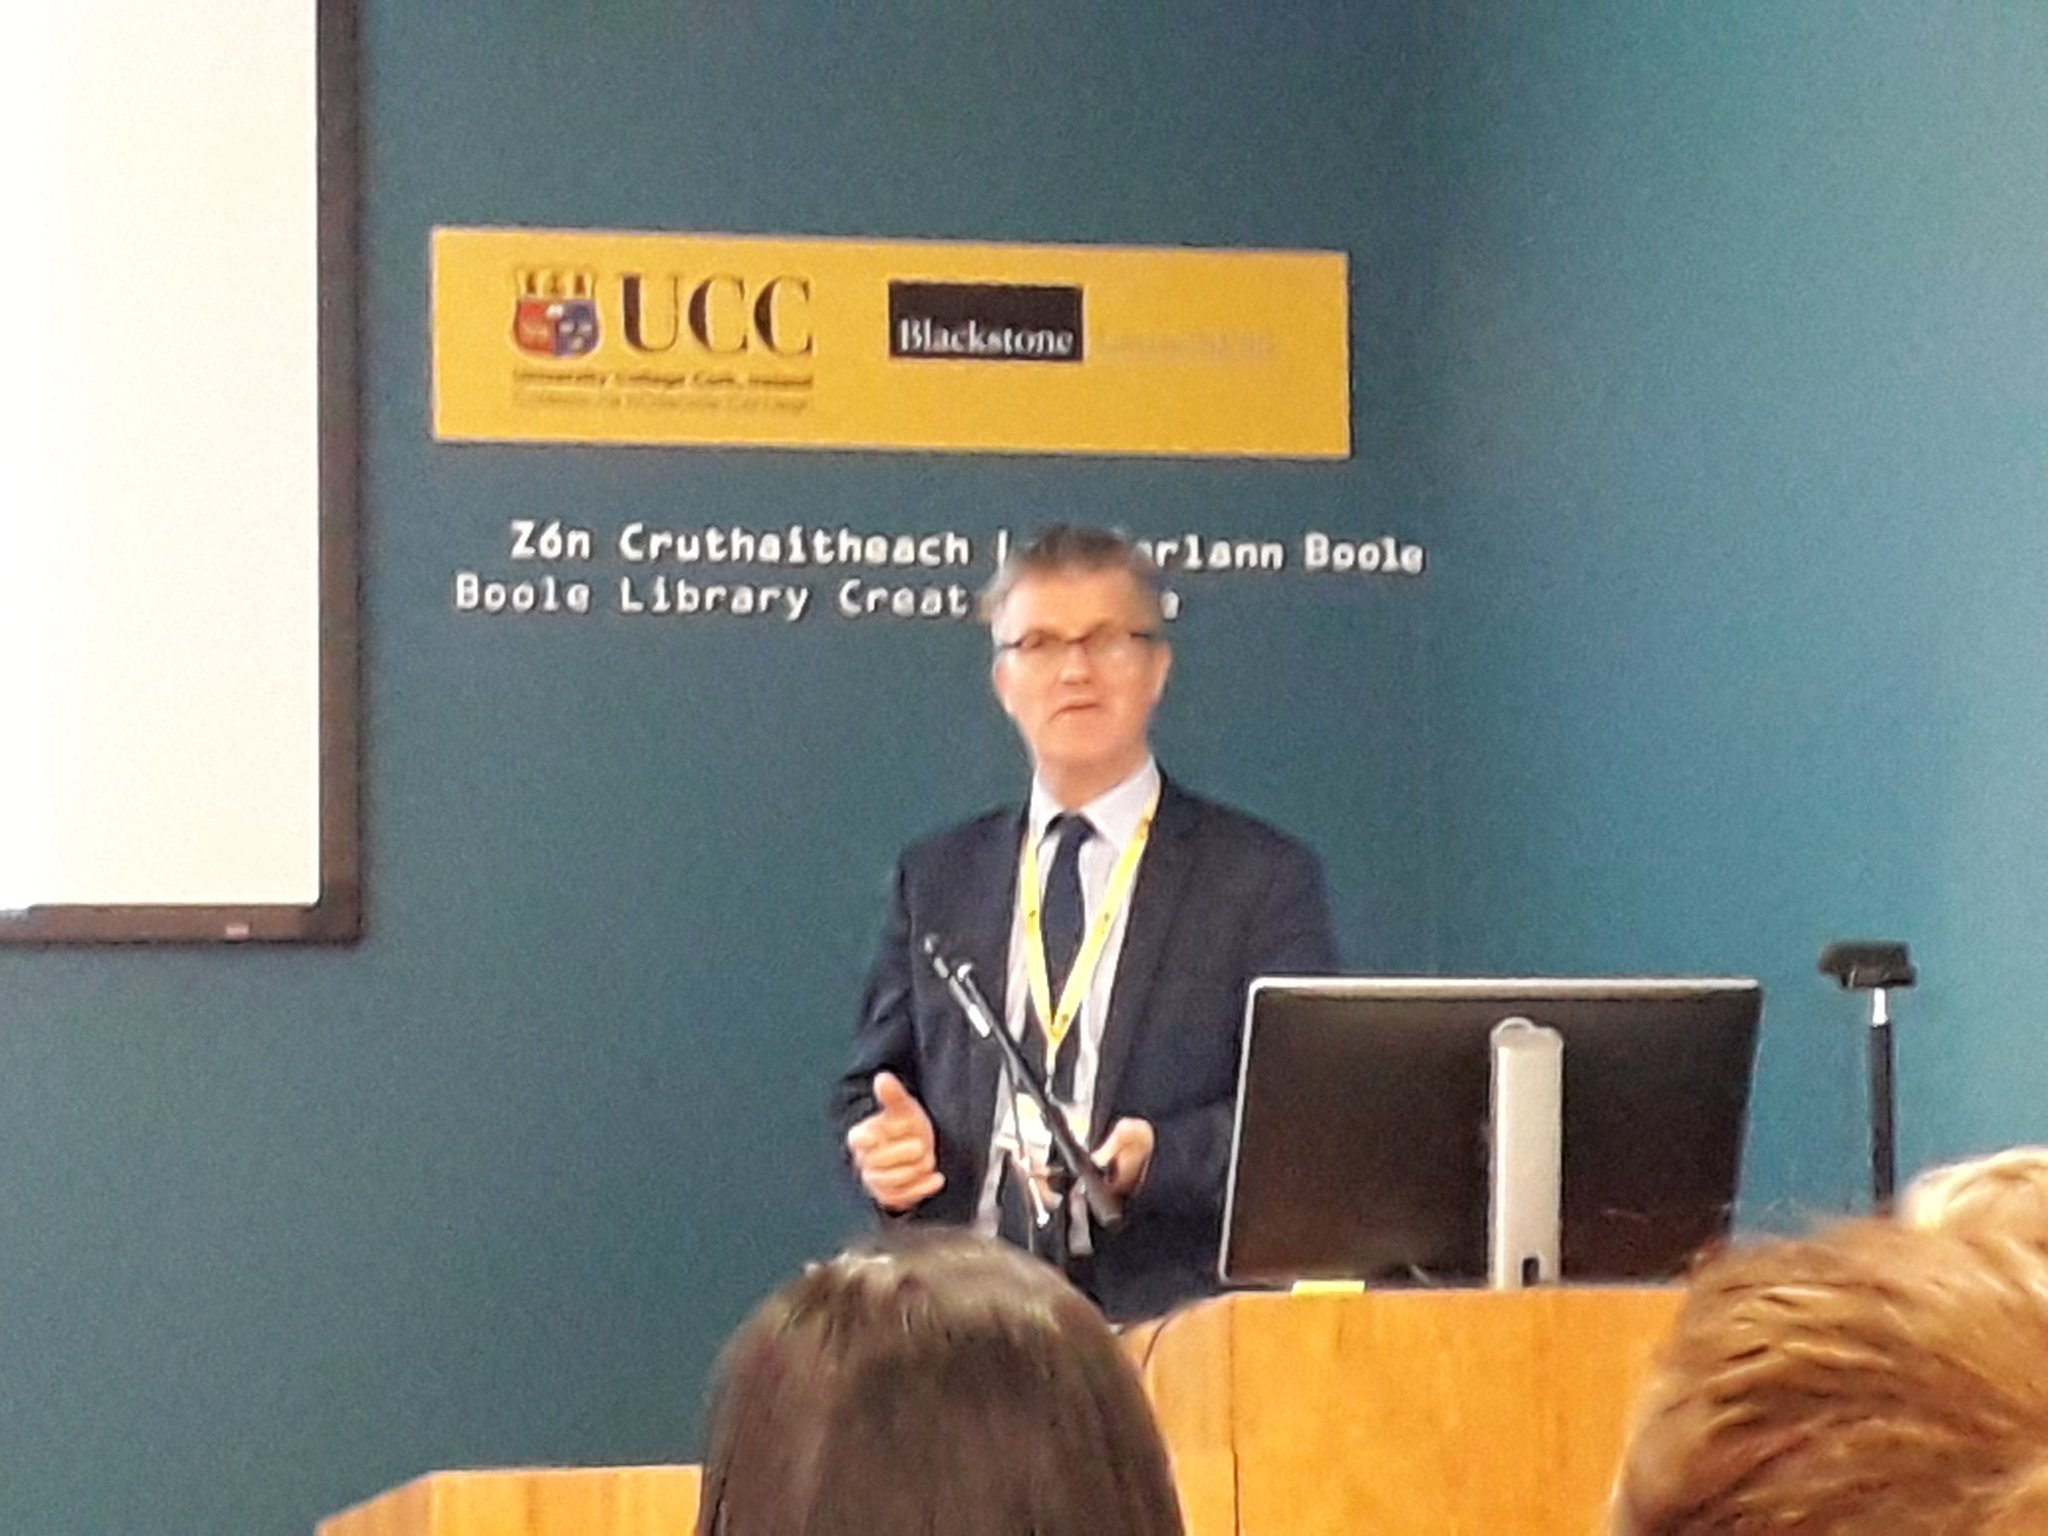 "damien raftery on twitter: ""great welcome from ucc for #tlspeeds"